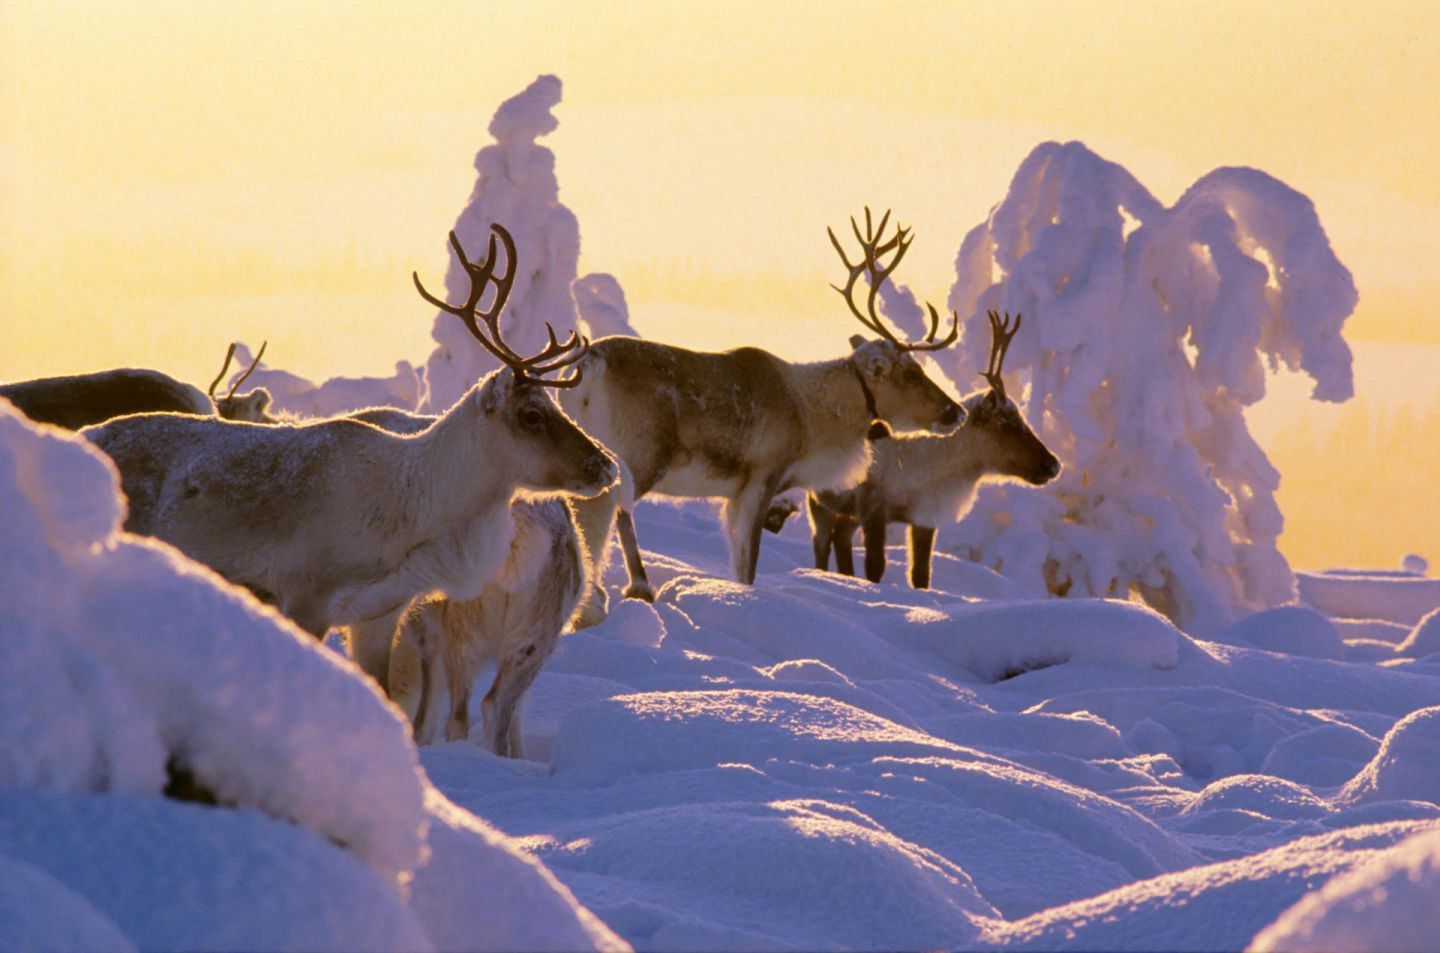 Reindeer enjoying the snowy fields in Lapland in winter